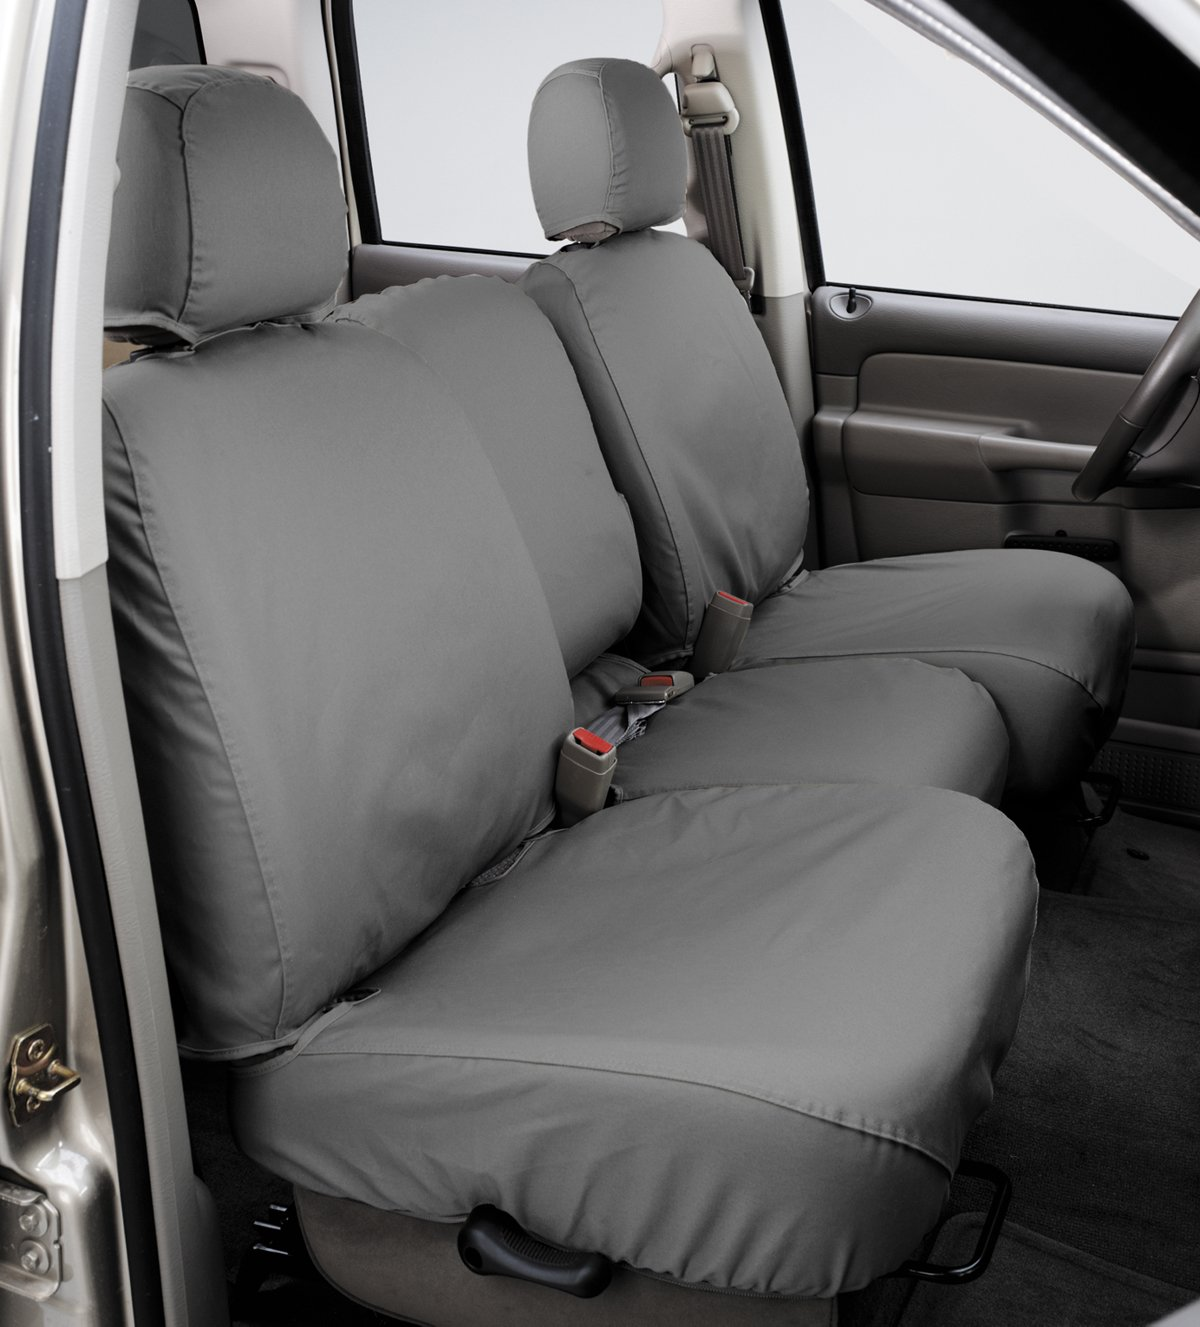 Polycotton Covercraft SS8393PCGY SeatSaver Second Row Custom Fit Seat Cover for Select Ford F-250 Super Duty//Ford F-350 Super Duty Models Grey